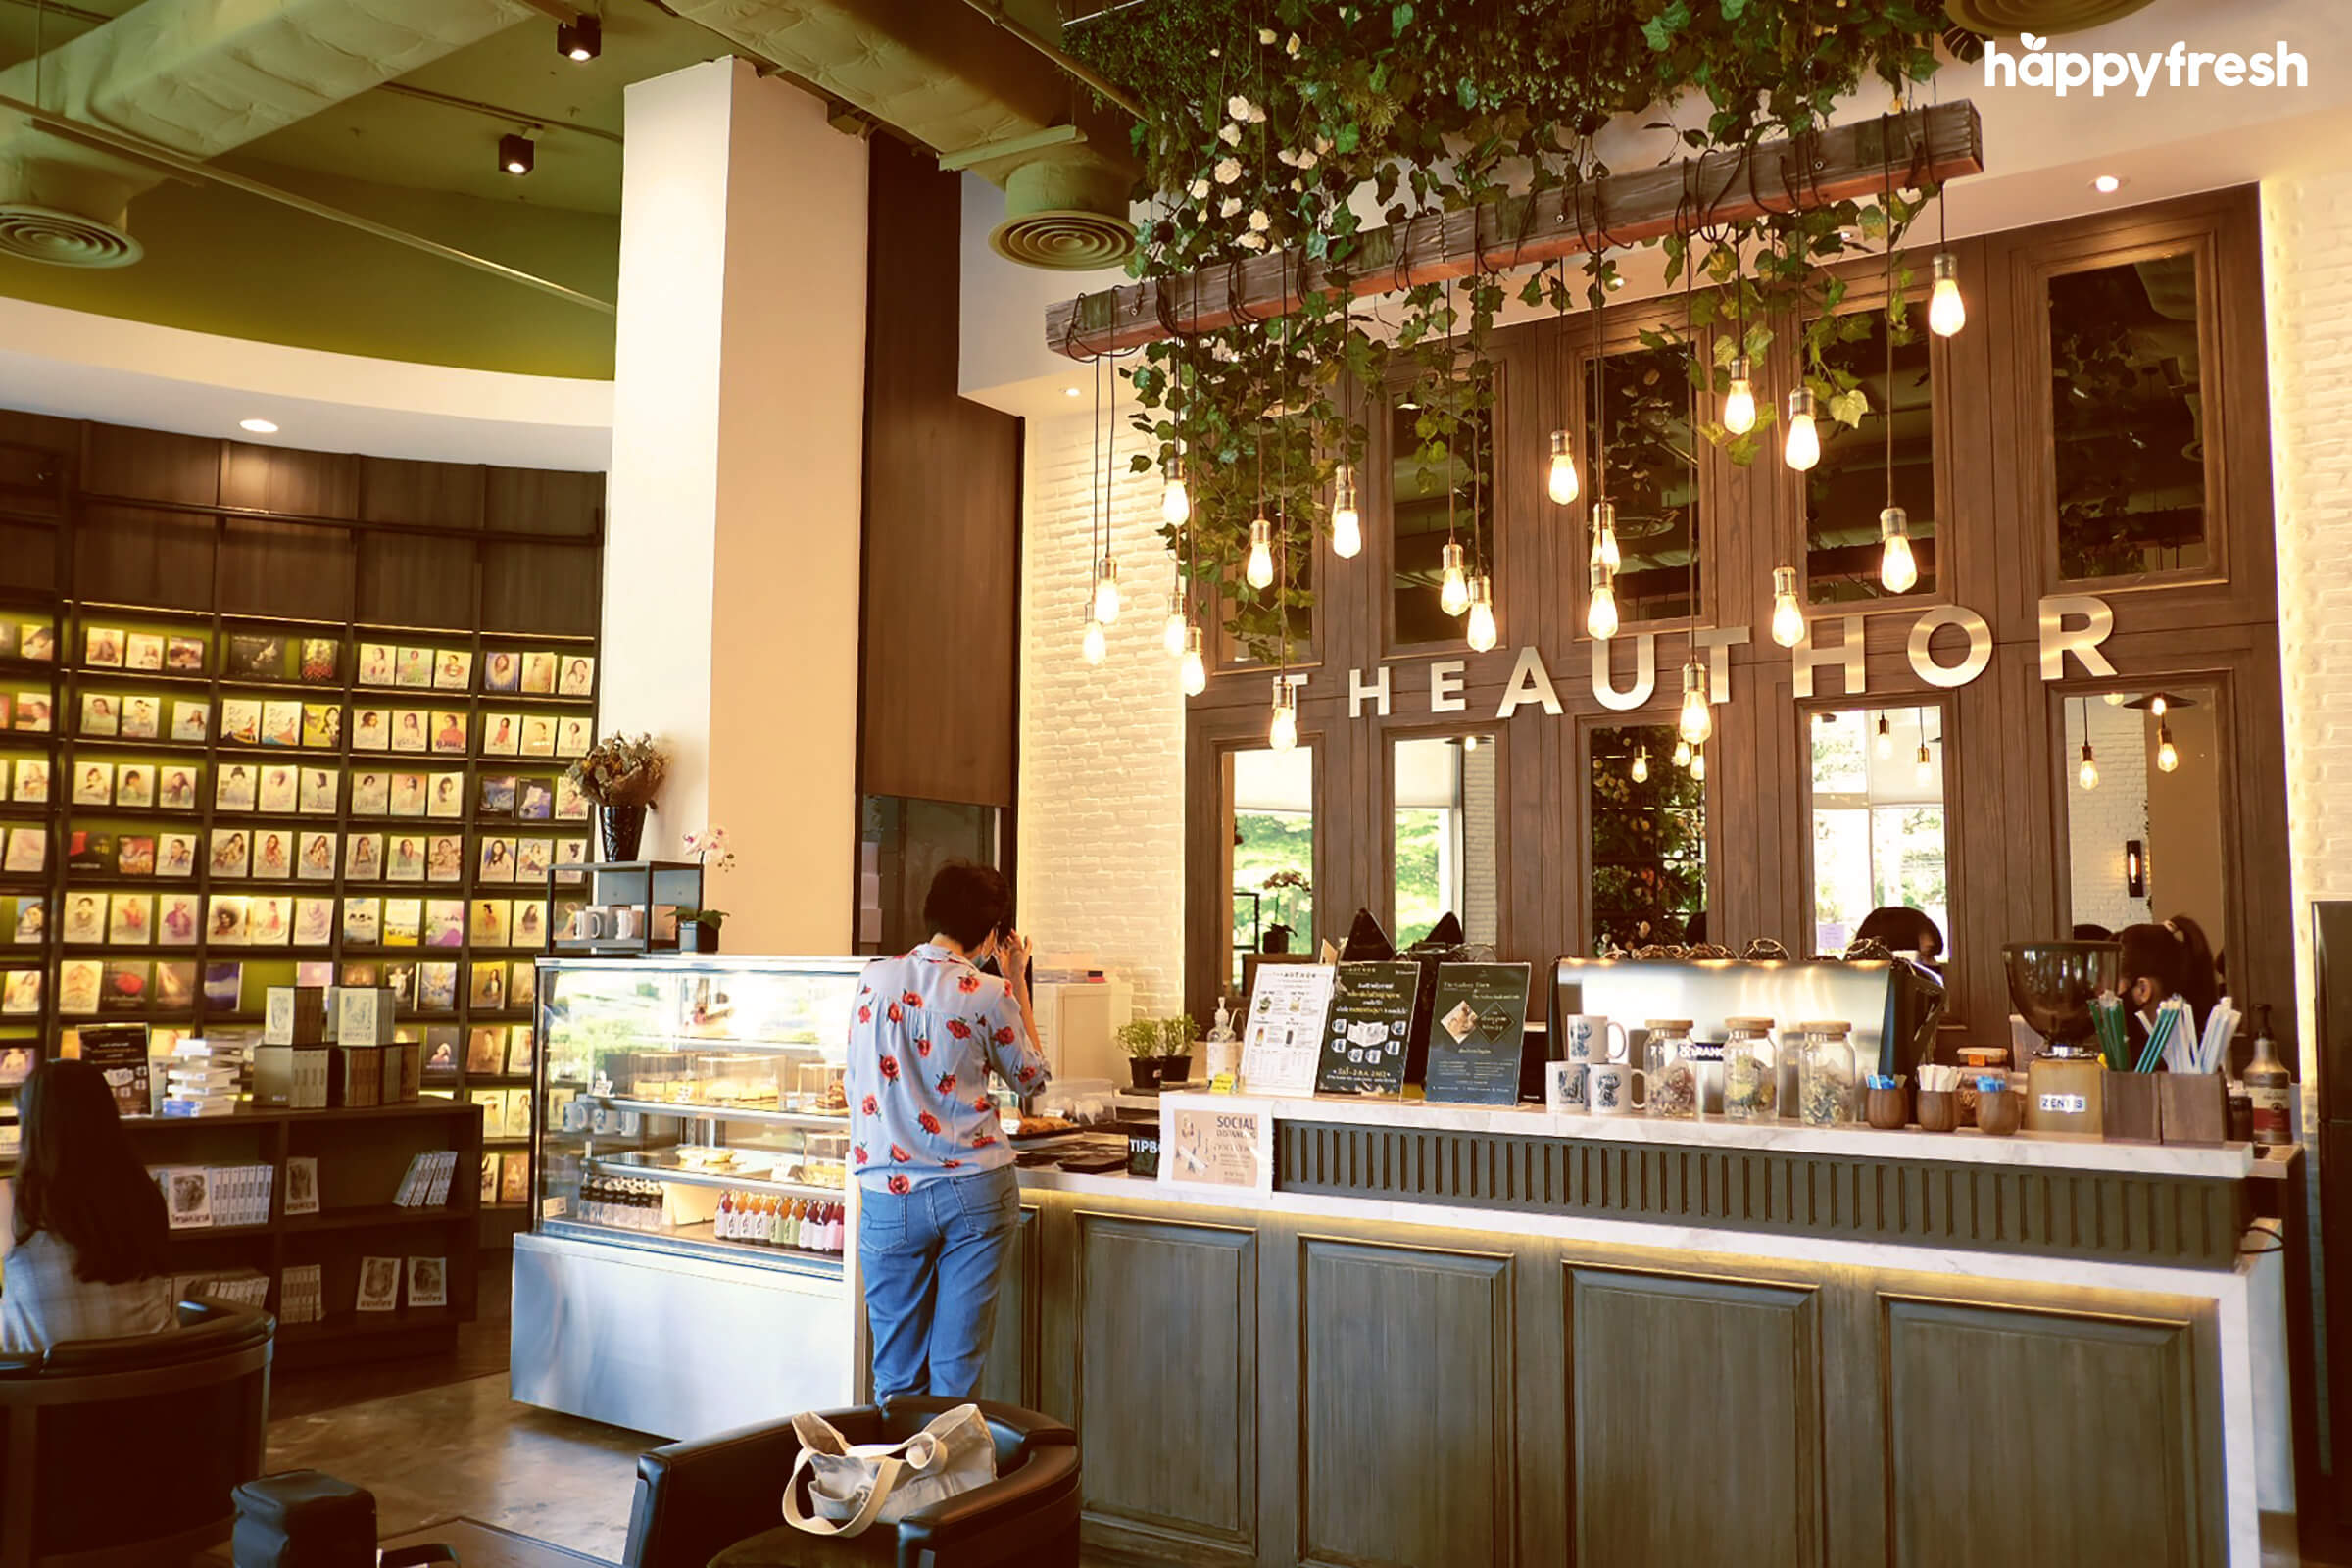 HappyFresh_Review_5_Cafes_Bookstores_In_Bangkok_The_Author_Cafe_Pantry